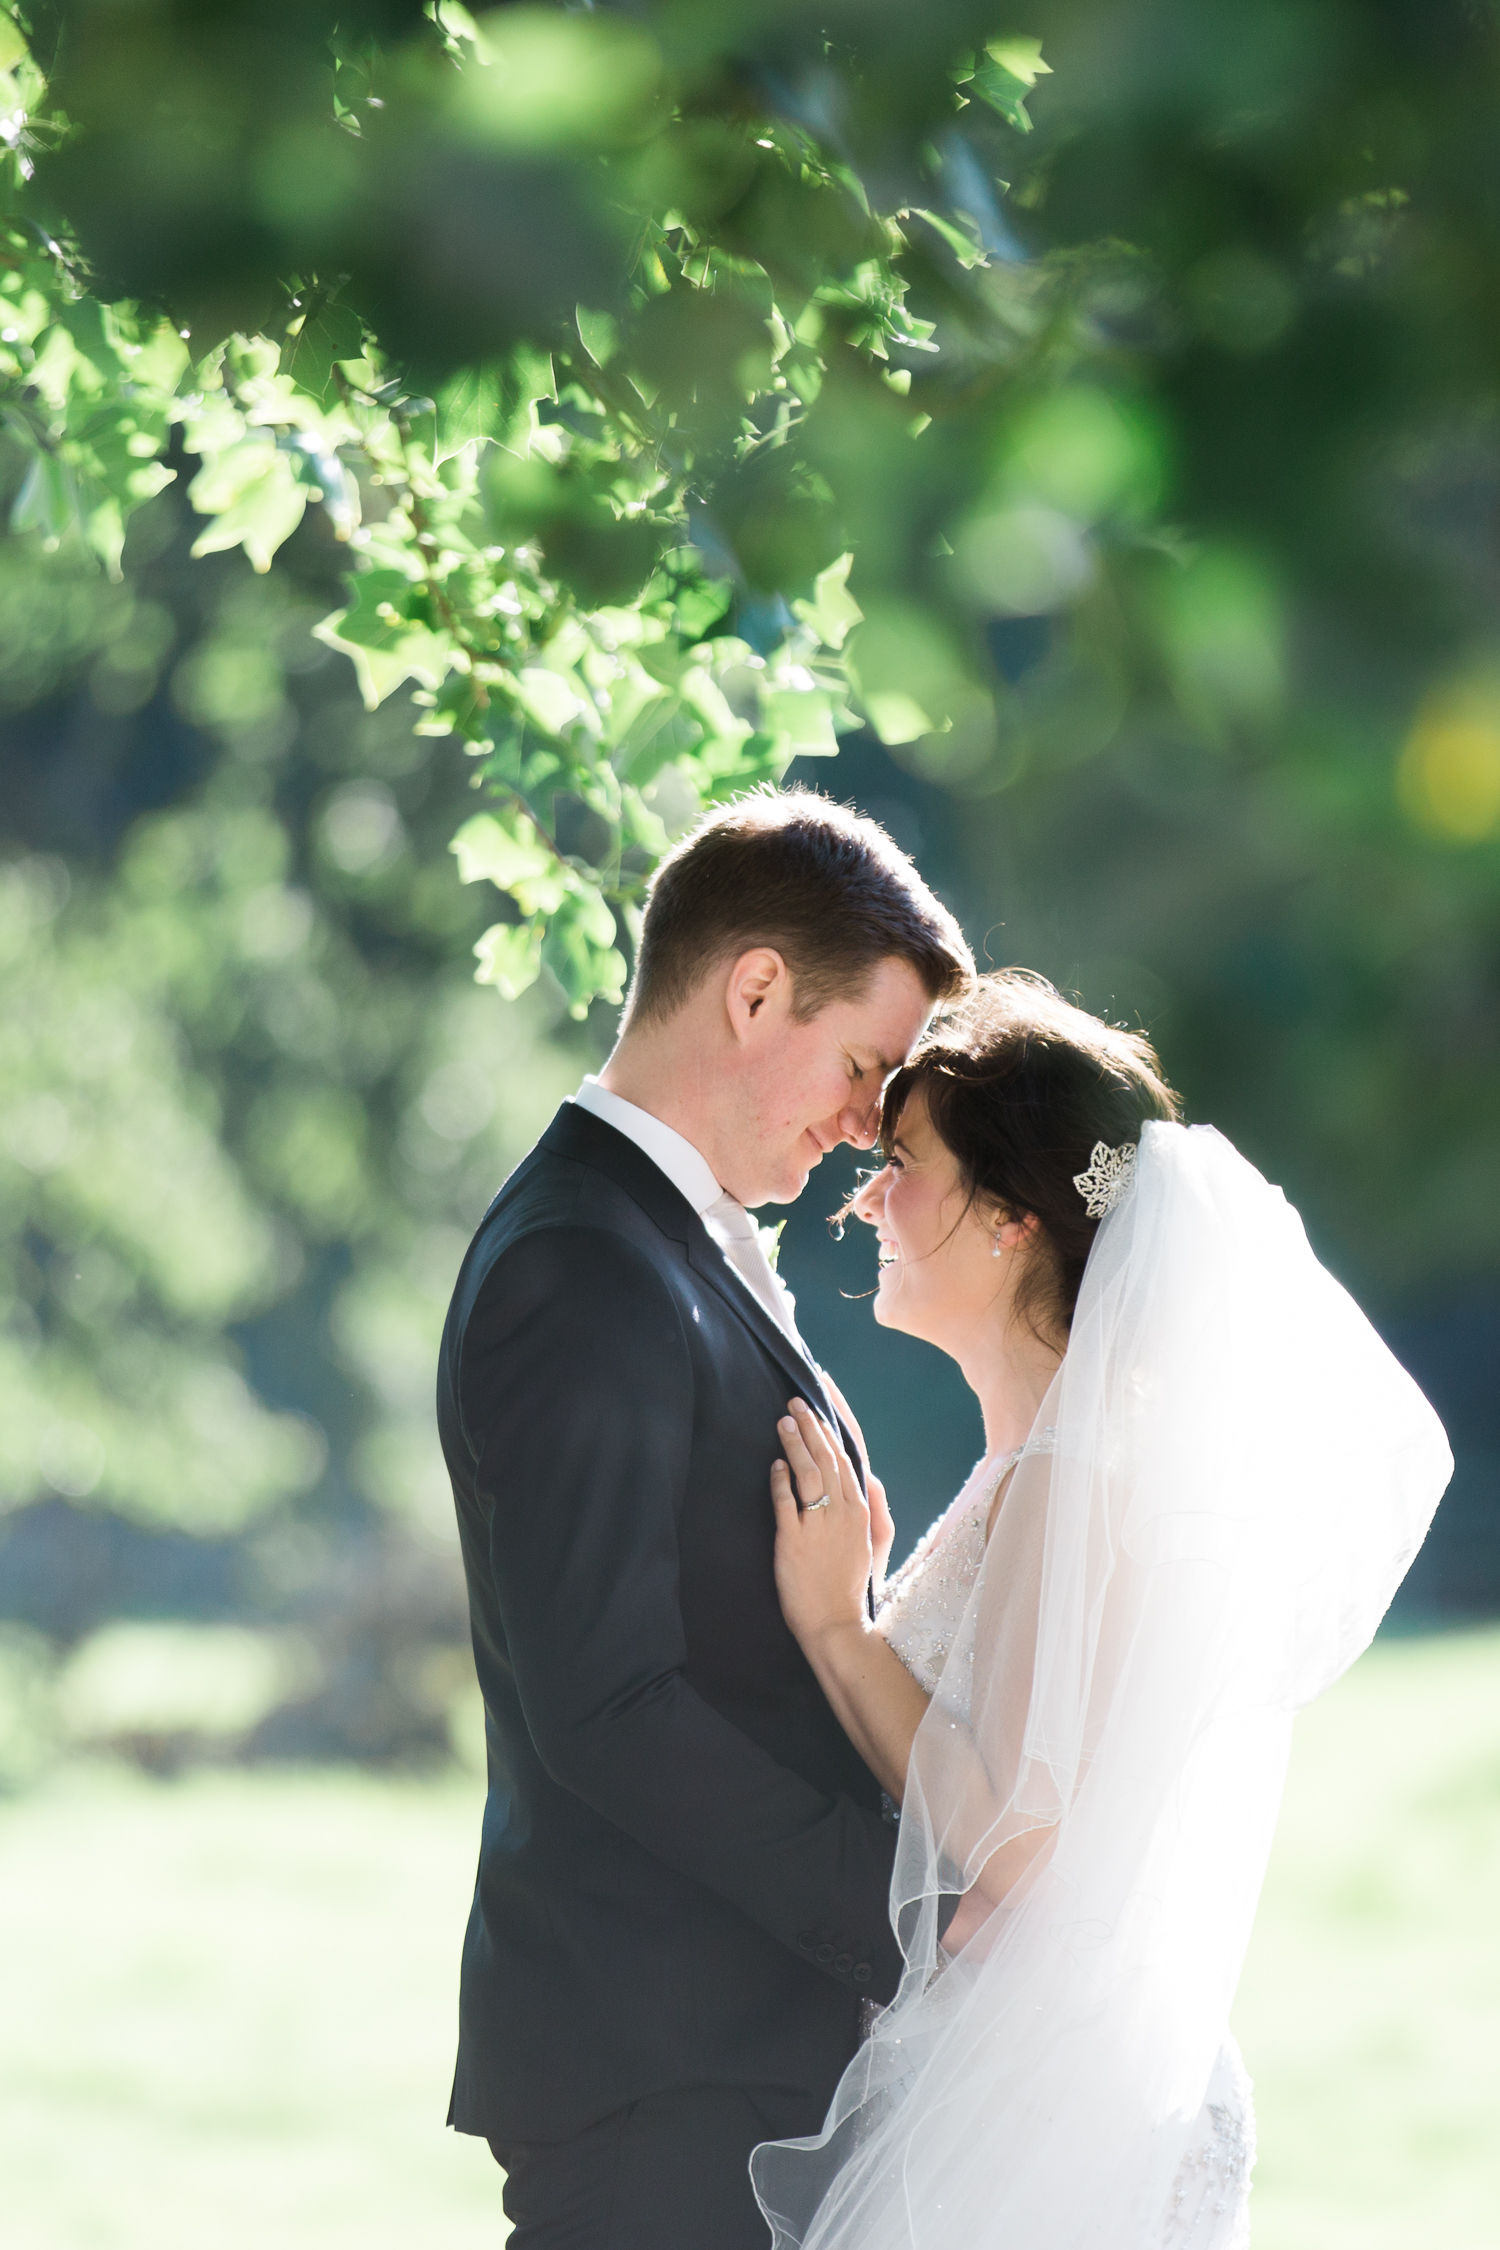 An elegant summer Iscoyd Park wedding. Bride and groom for an elegant Iscoyd Park summer wedding photo